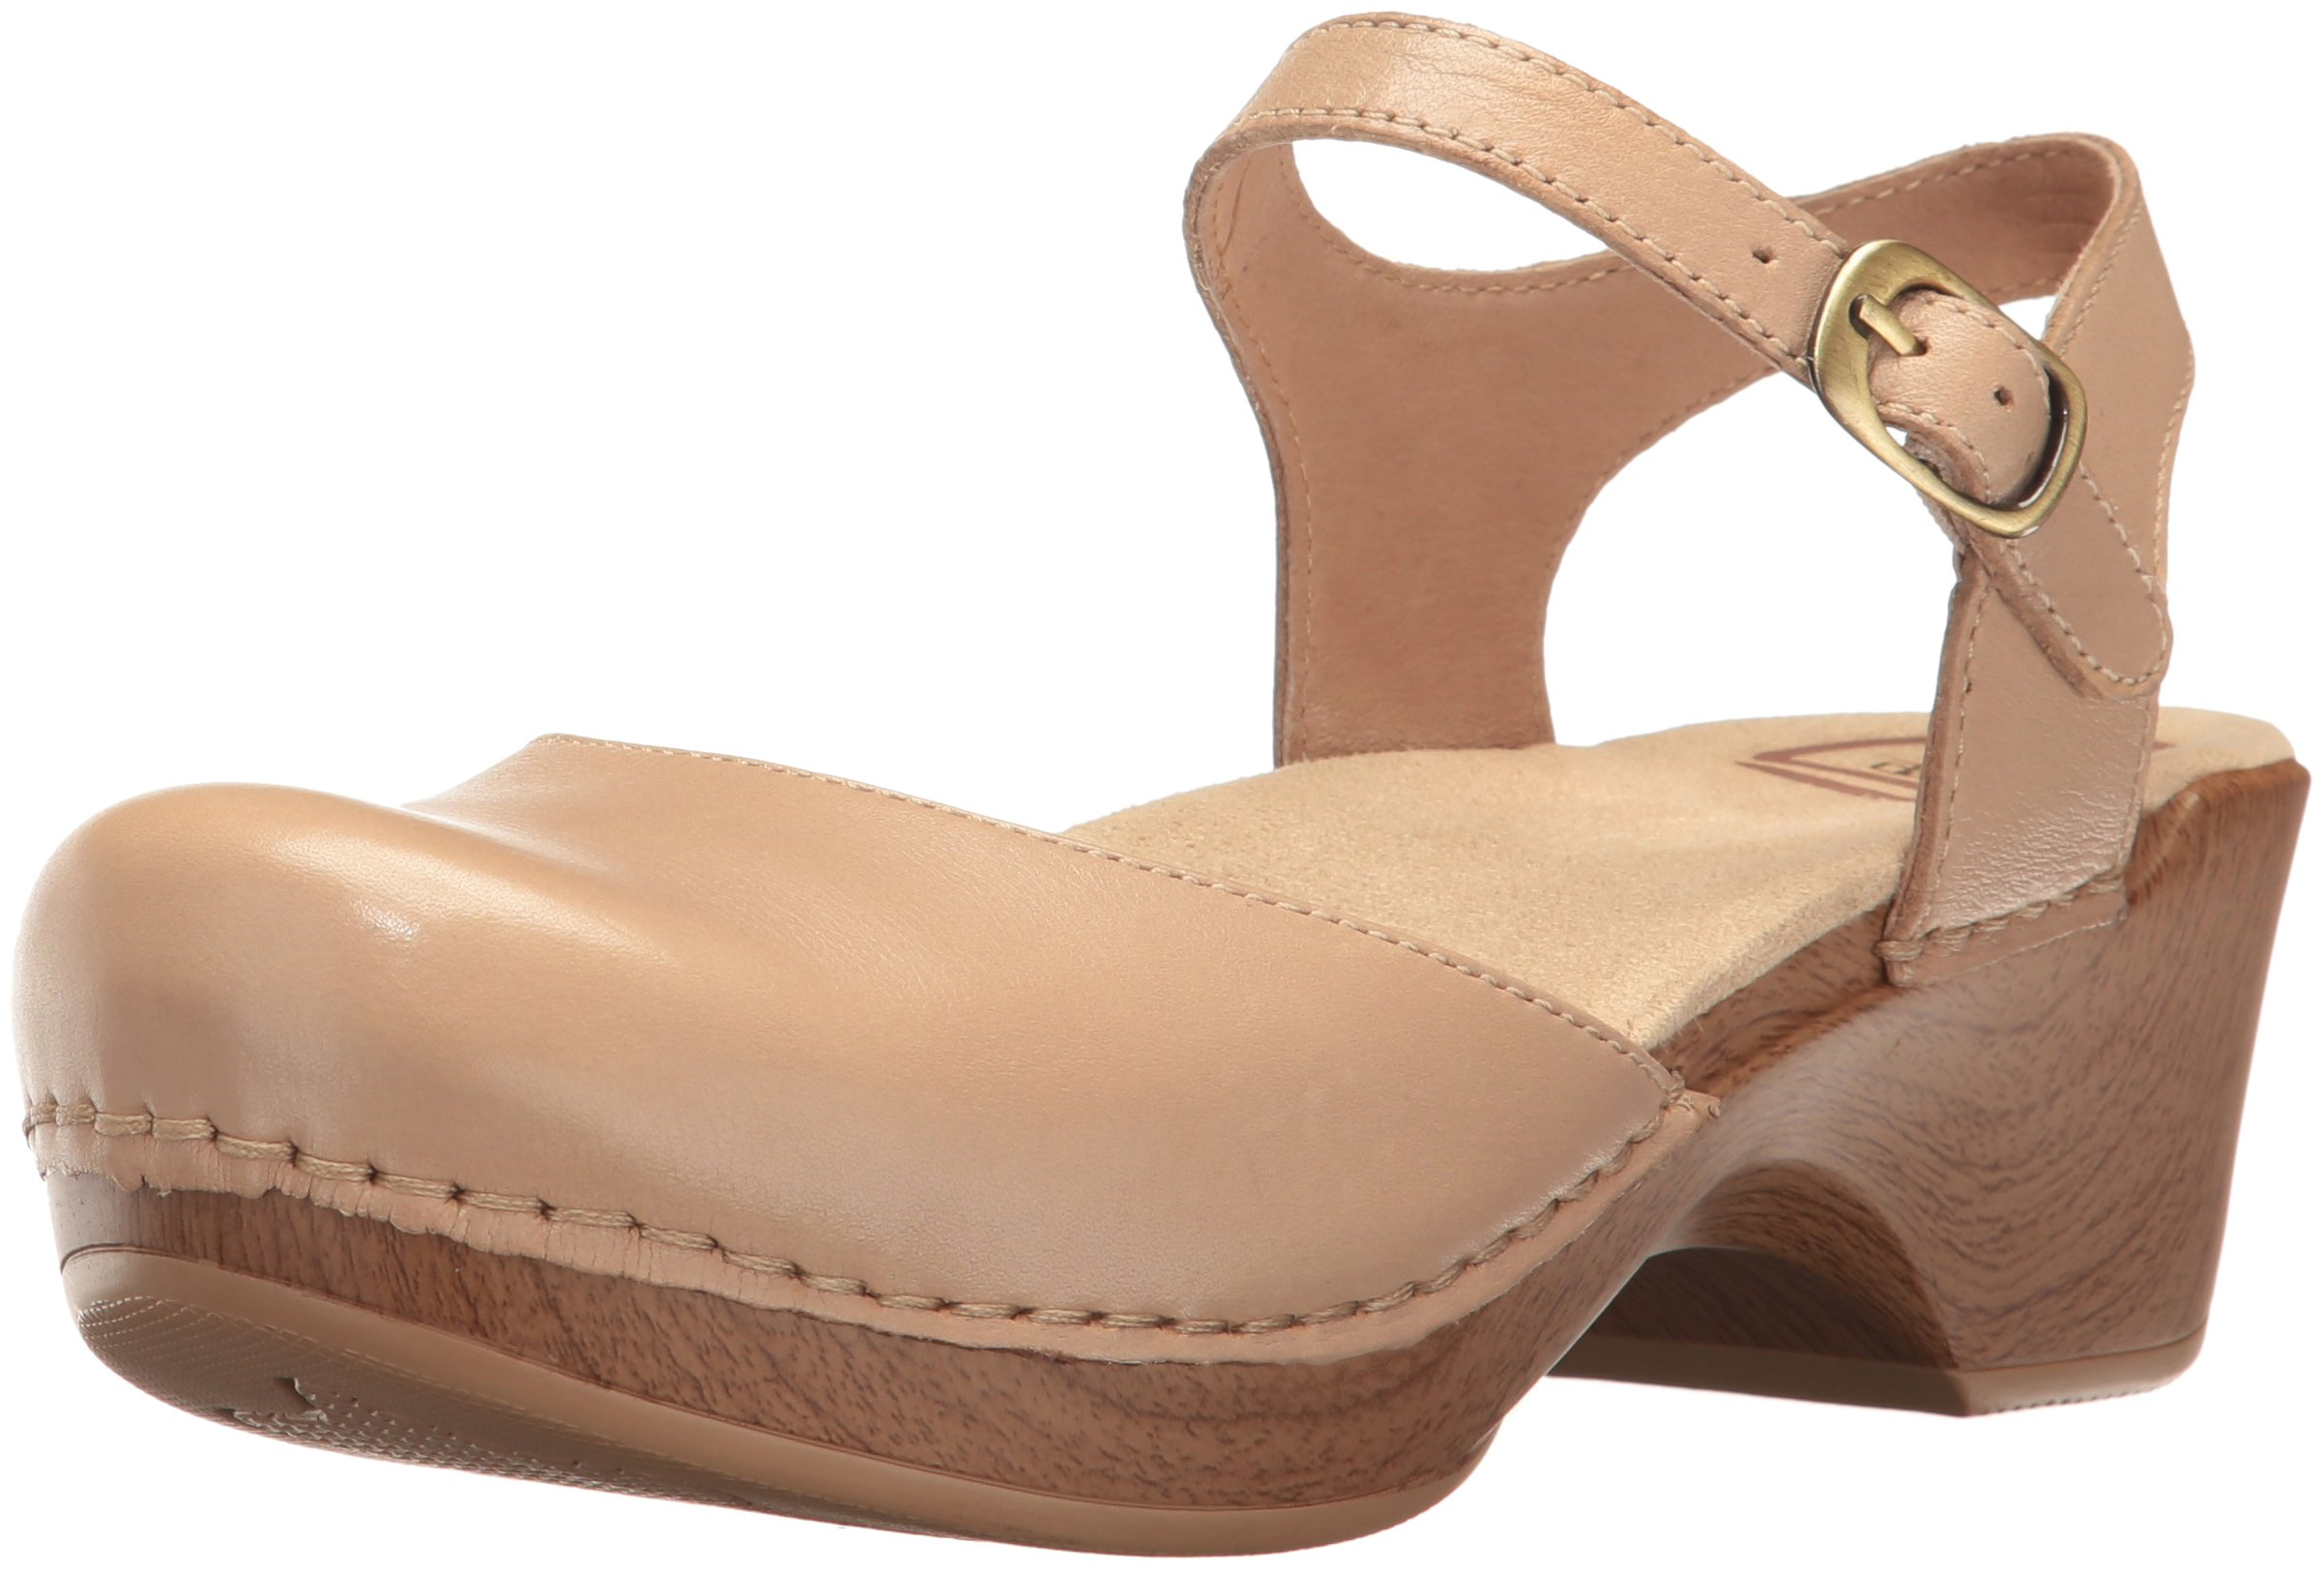 Dansko Women's Sam Flat Sandal, Sand Dollar Full Grain, 37 EU/6.5-7 M US